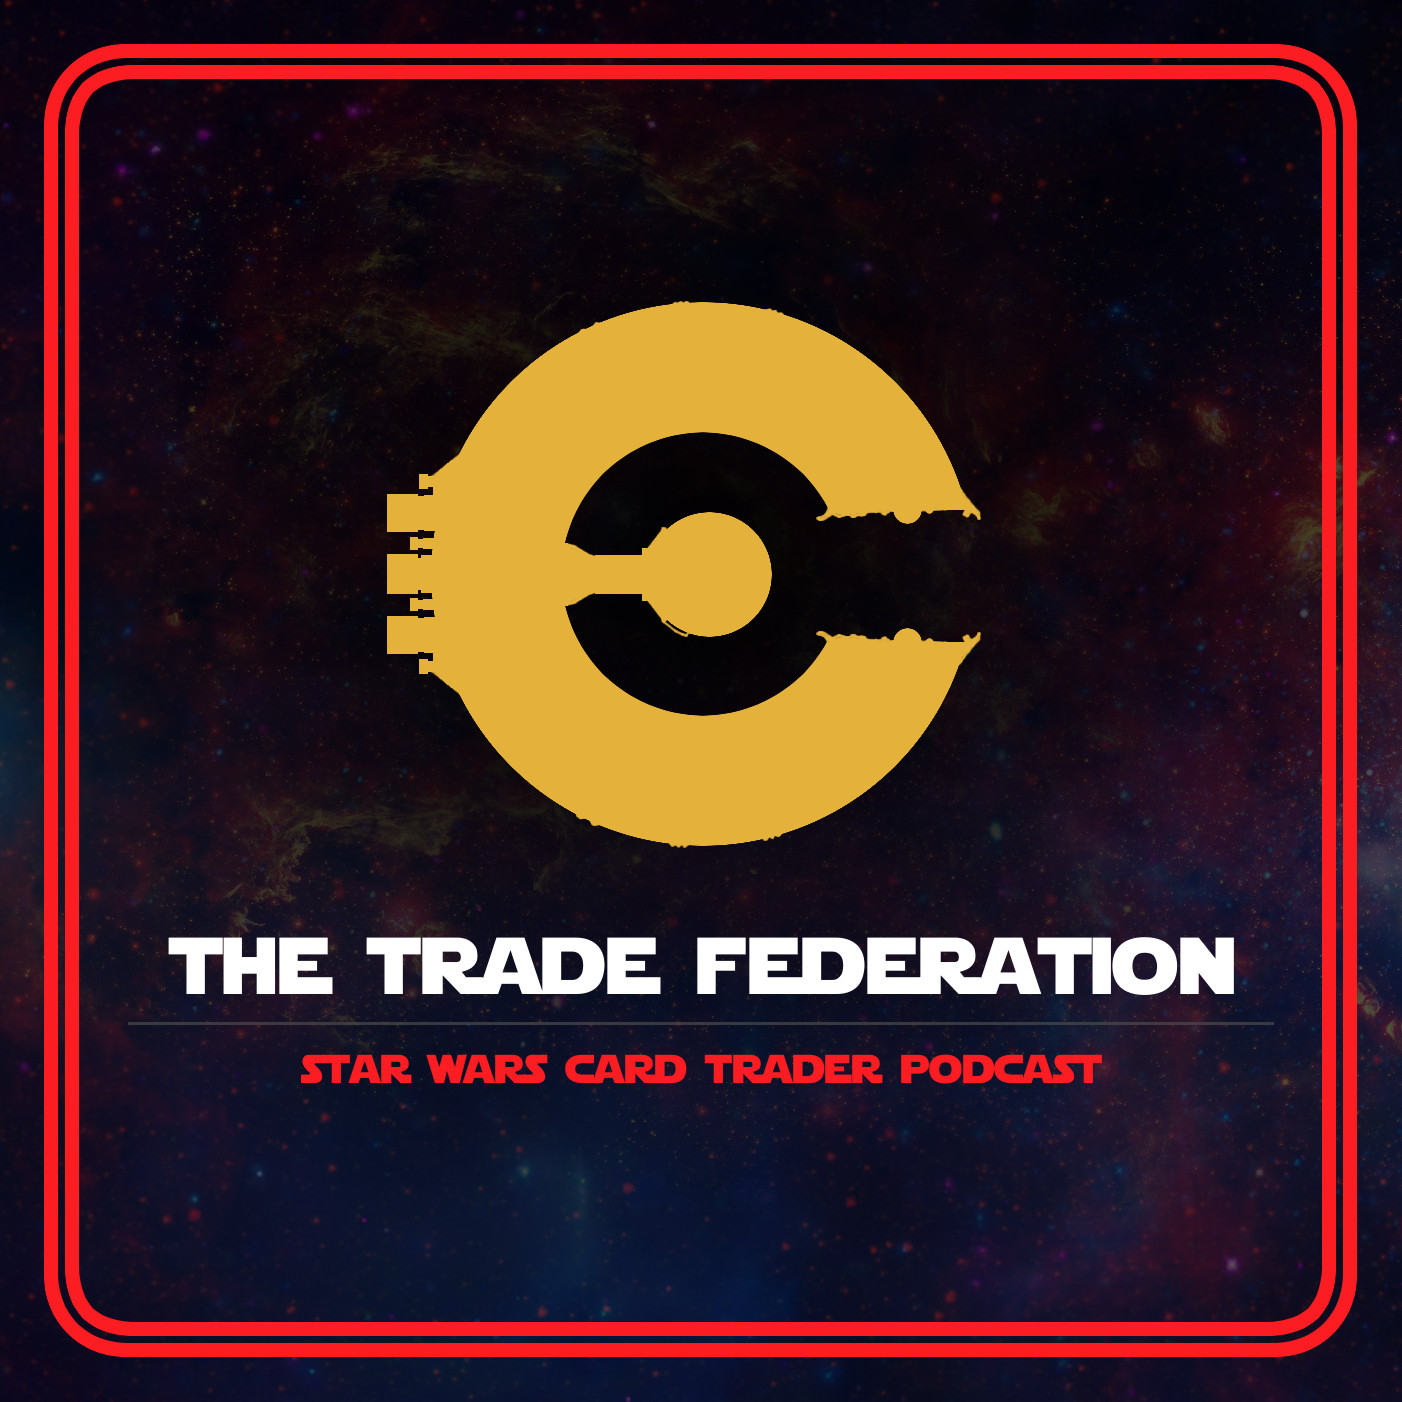 The Trade Federation podcast, Base Series 3 Previews